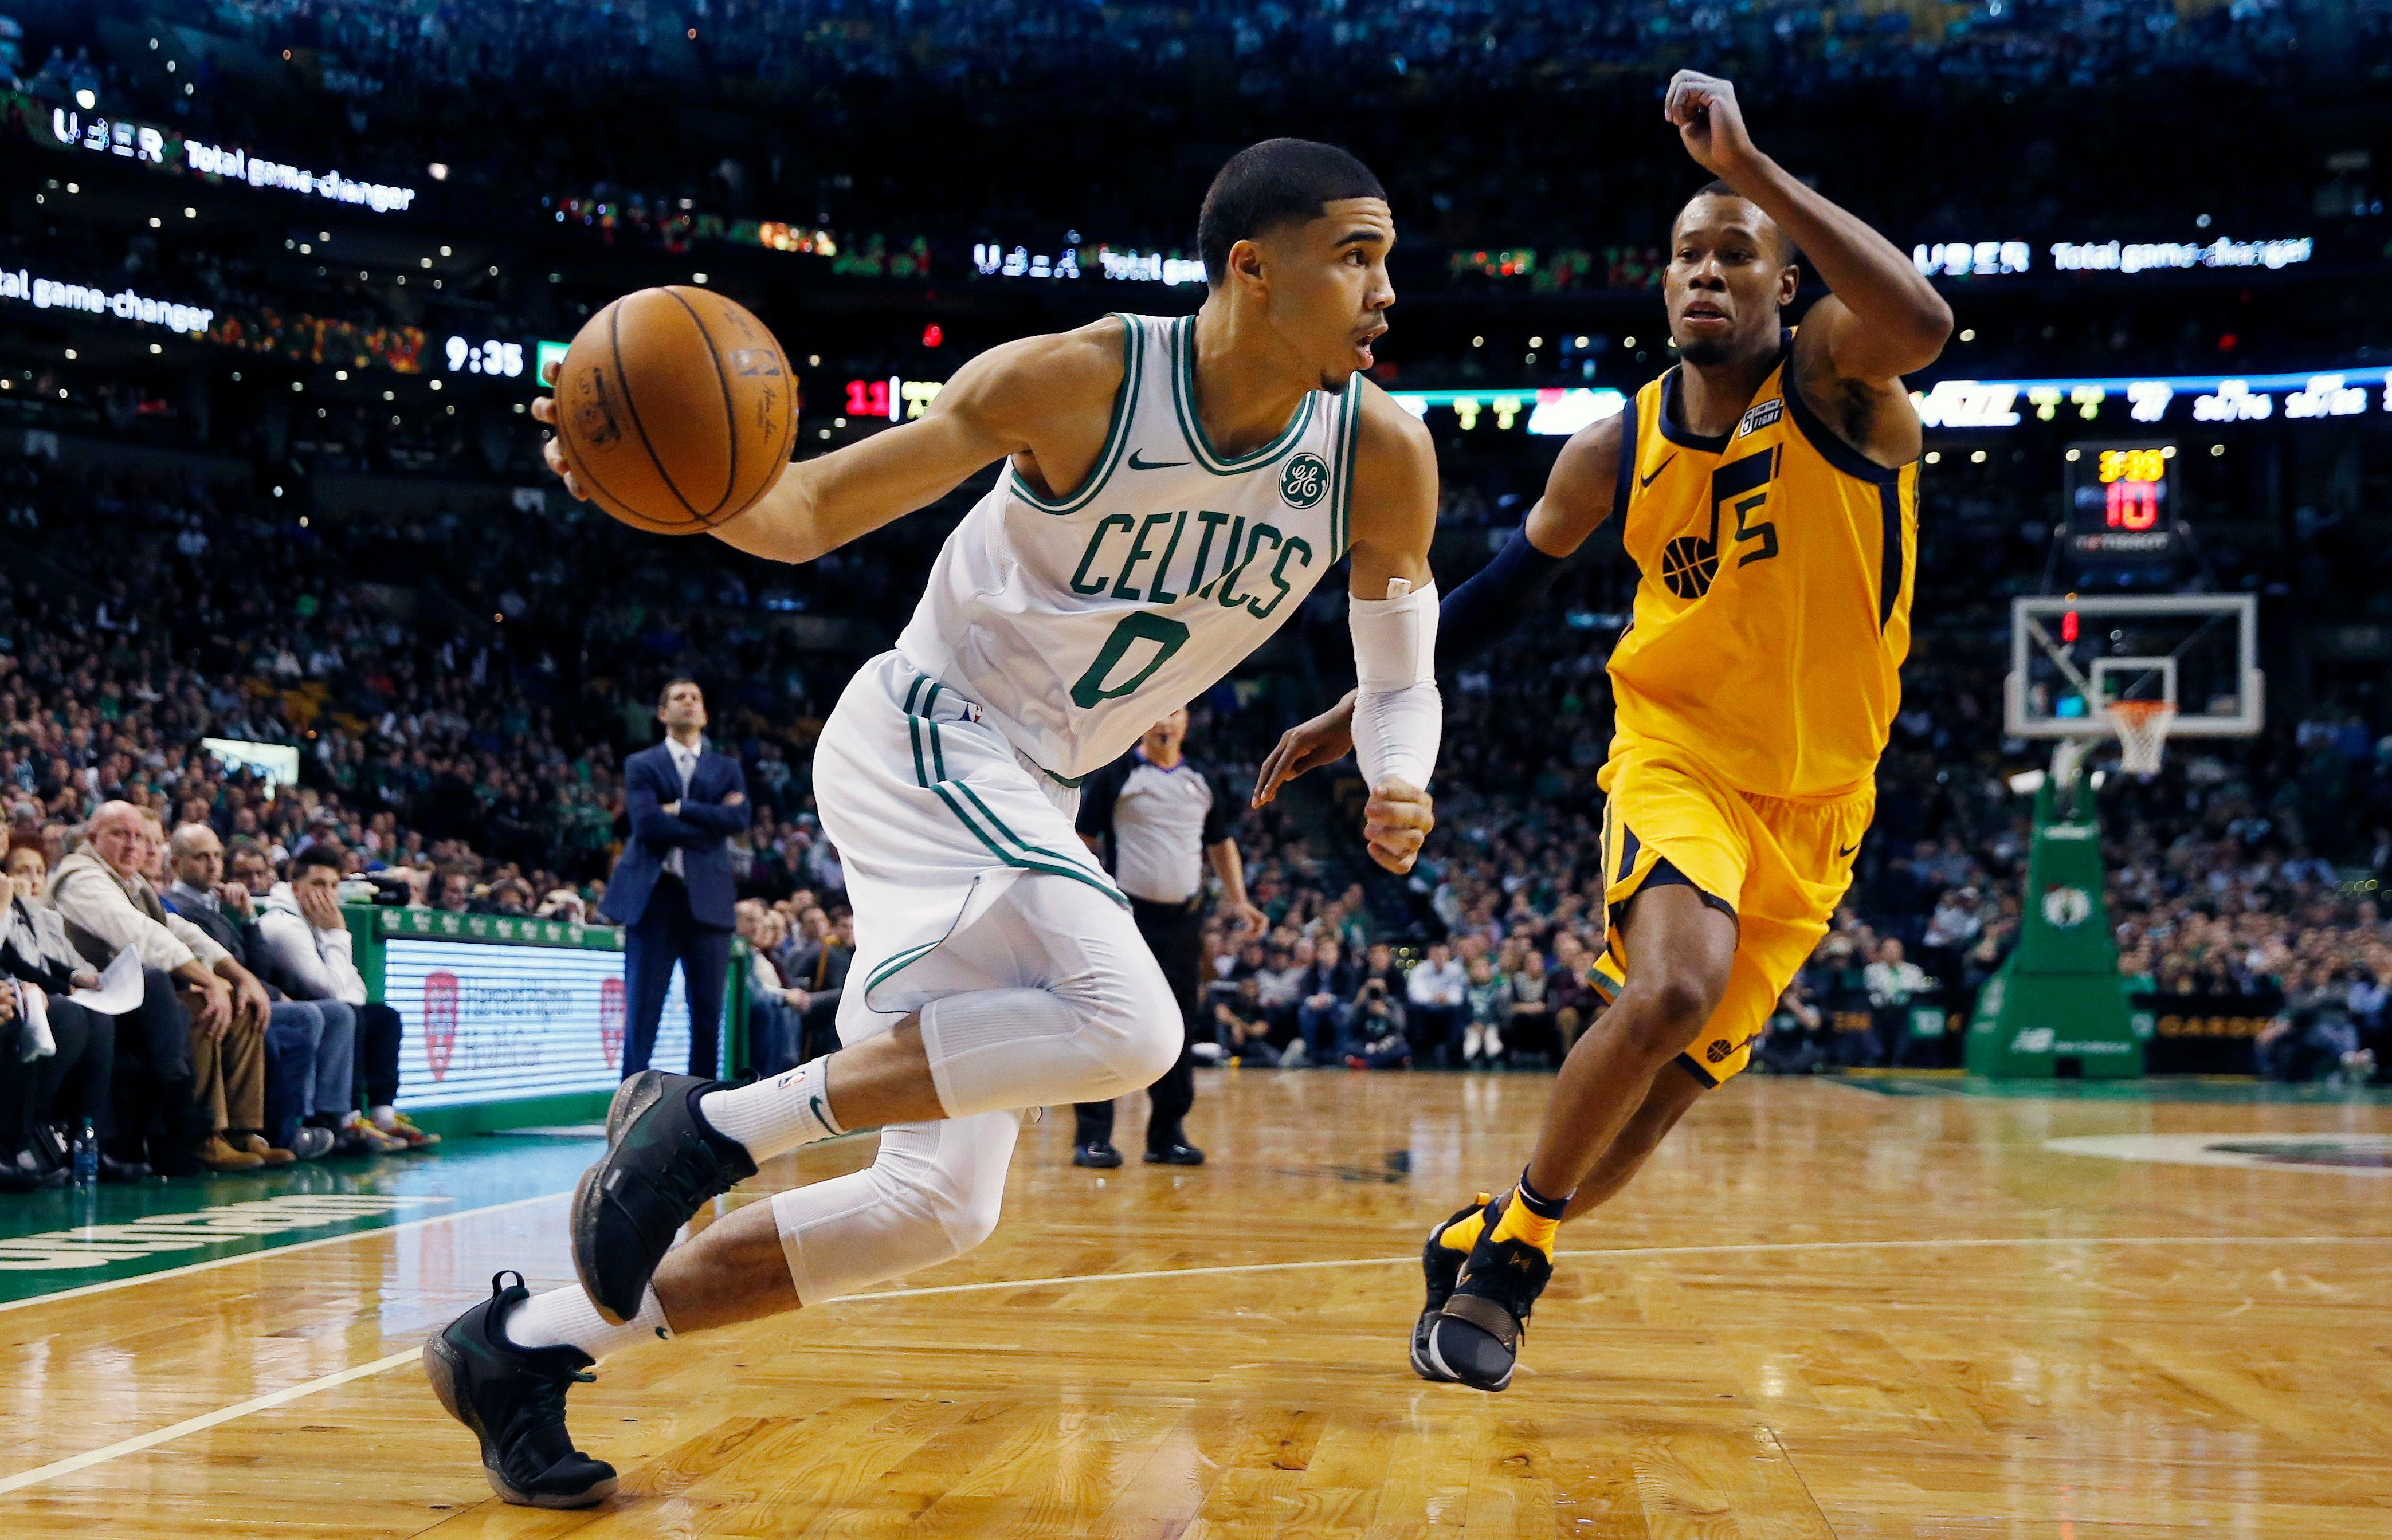 Boston Celtics' Jayson Tatum (0) drives past Utah Jazz's Rodney Hood (5) during the fourth quarter of an NBA basketball game in Boston, Friday, Dec. 15, 2017. The Jazz won 107-95. (AP Photo/Michael Dwyer)